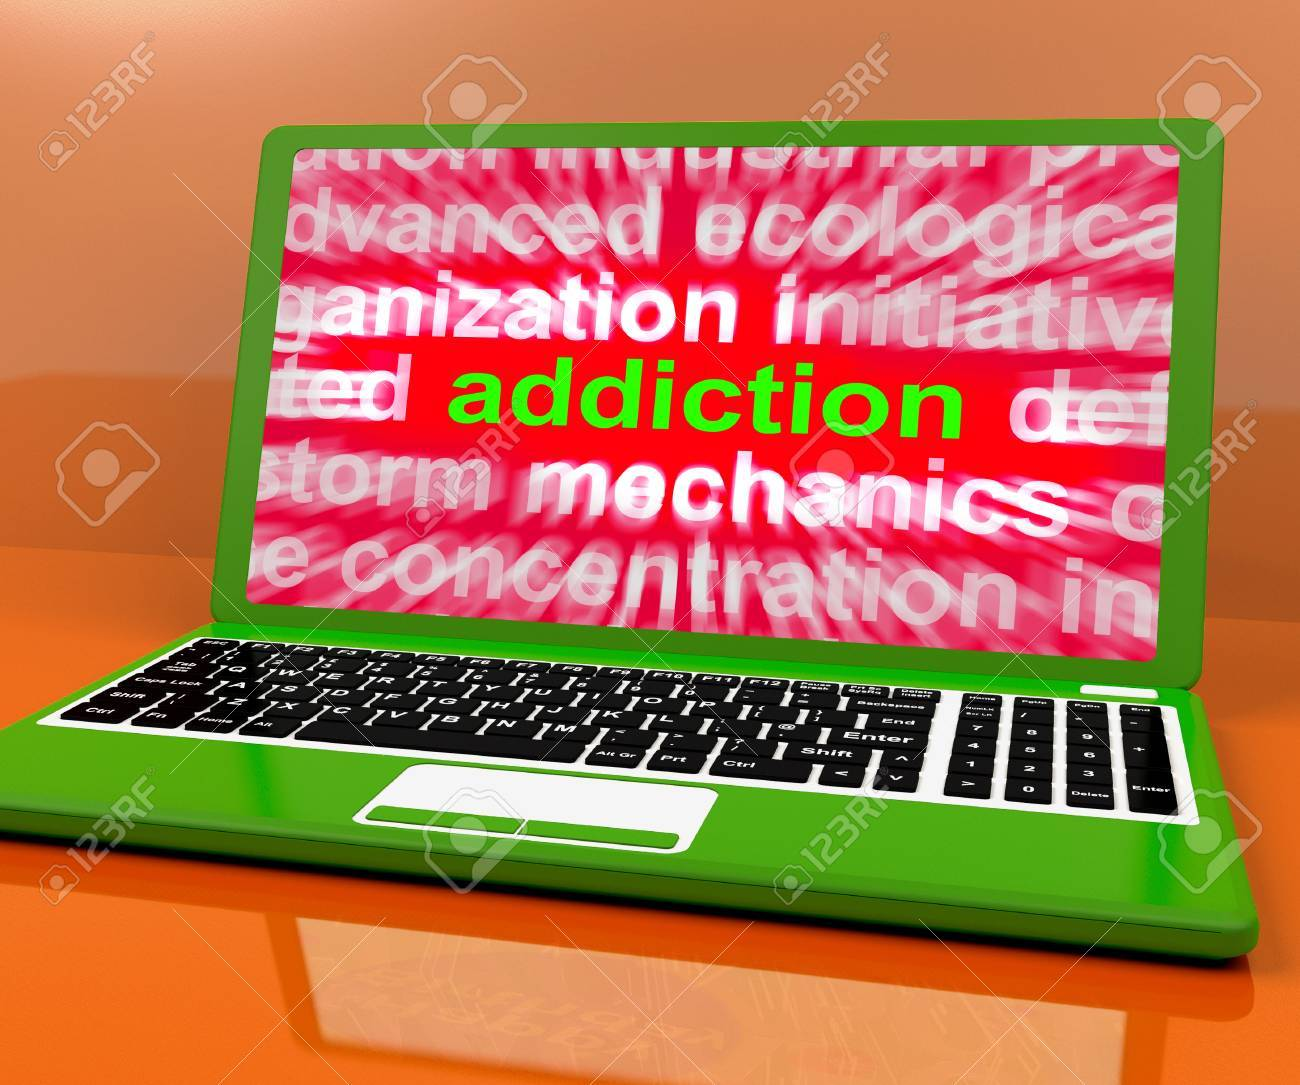 computer addiction meaning